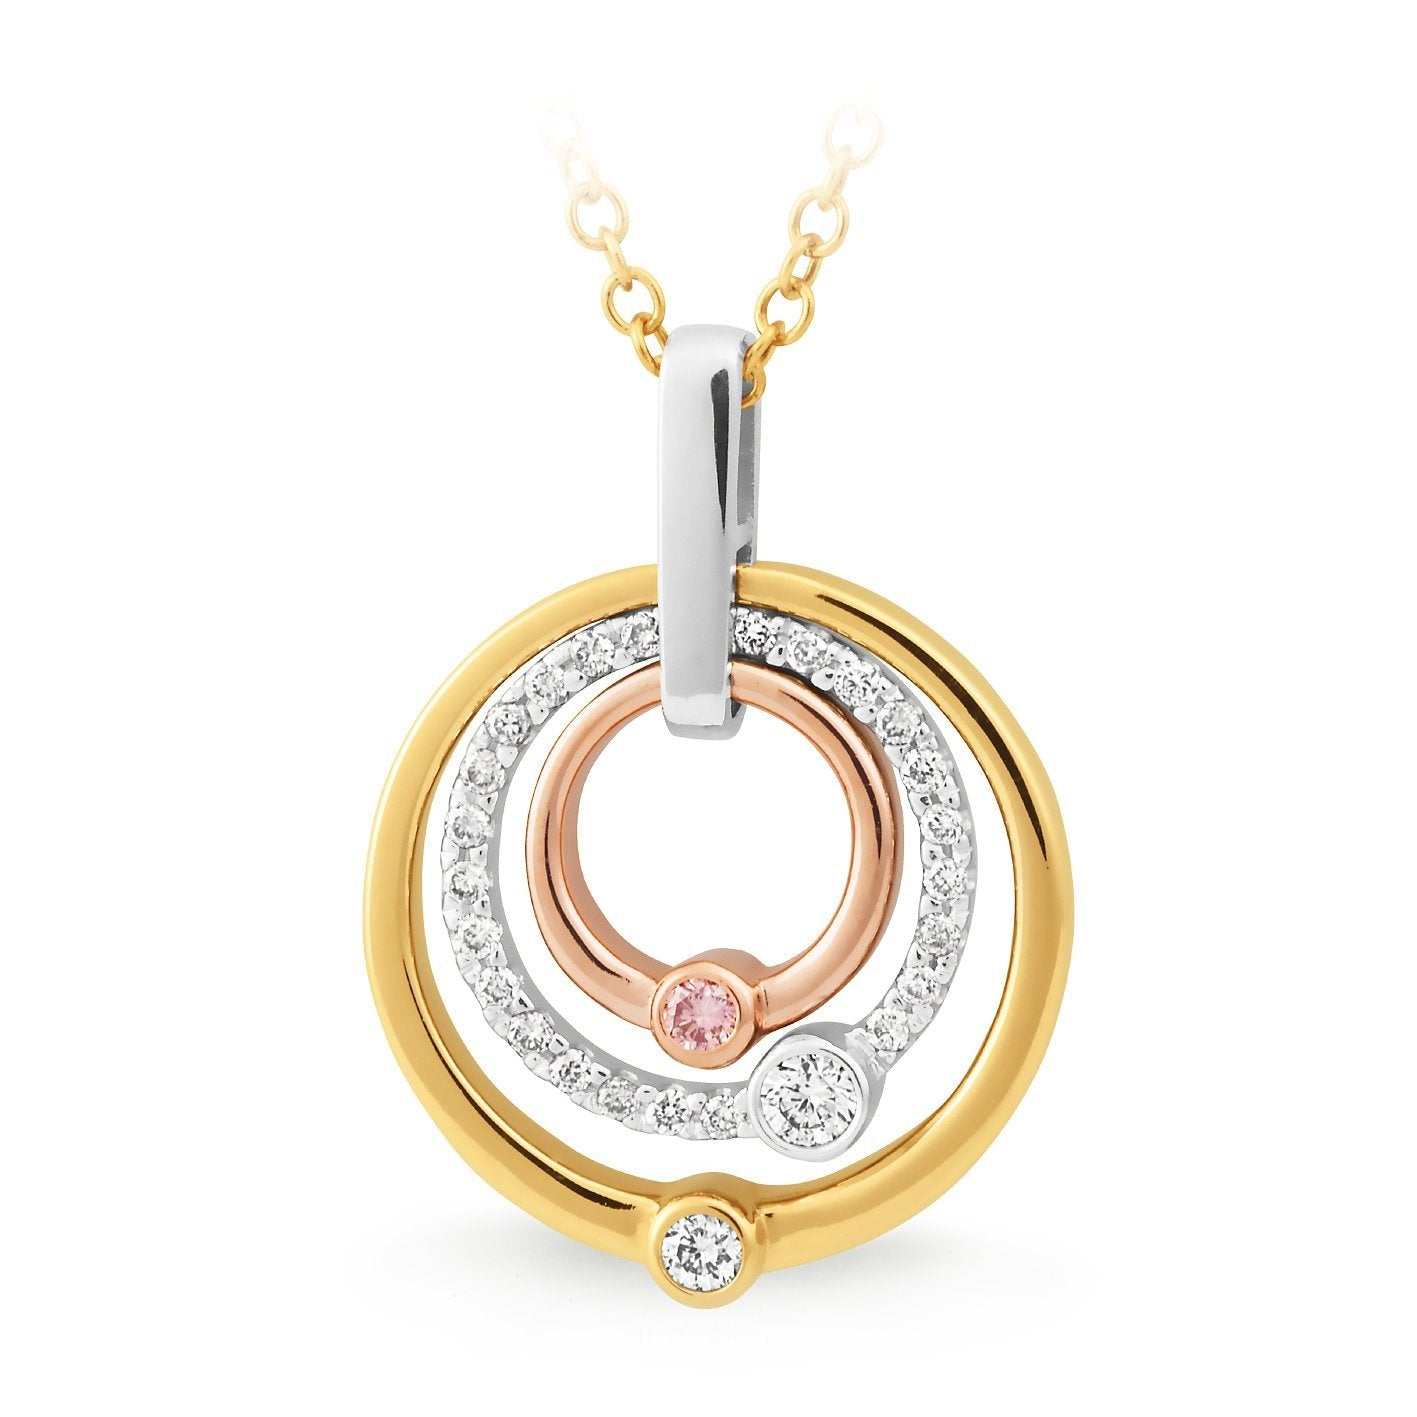 PINK CAVIAR 0.195ct Pink Diamond Pendant in 9ct Yellow, White & Rose Gold